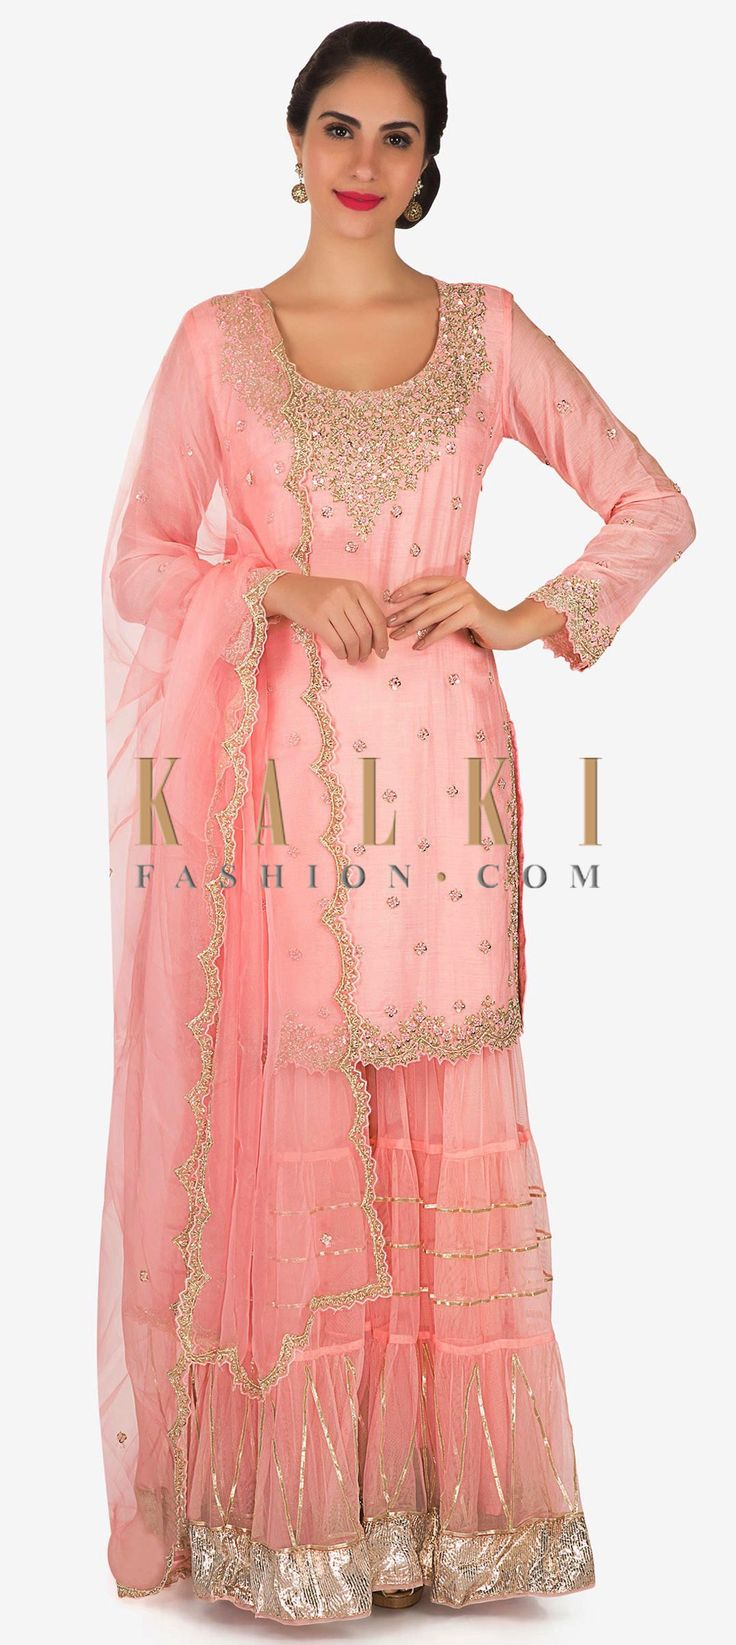 Buy Online from the link below. We ship worldwide Click Anywhere to Tag Light pink straight suit with palazzo pant in cut dana and french knot embroidery only on Kalki  Light pink straight suit featuring in cotton silk. Neckline is embellished in cut dana, moti and french knot embroidery. Matched with net palazzo pant with gotta lace. Dupatta is in tissue net. Slight variation in color is possible.